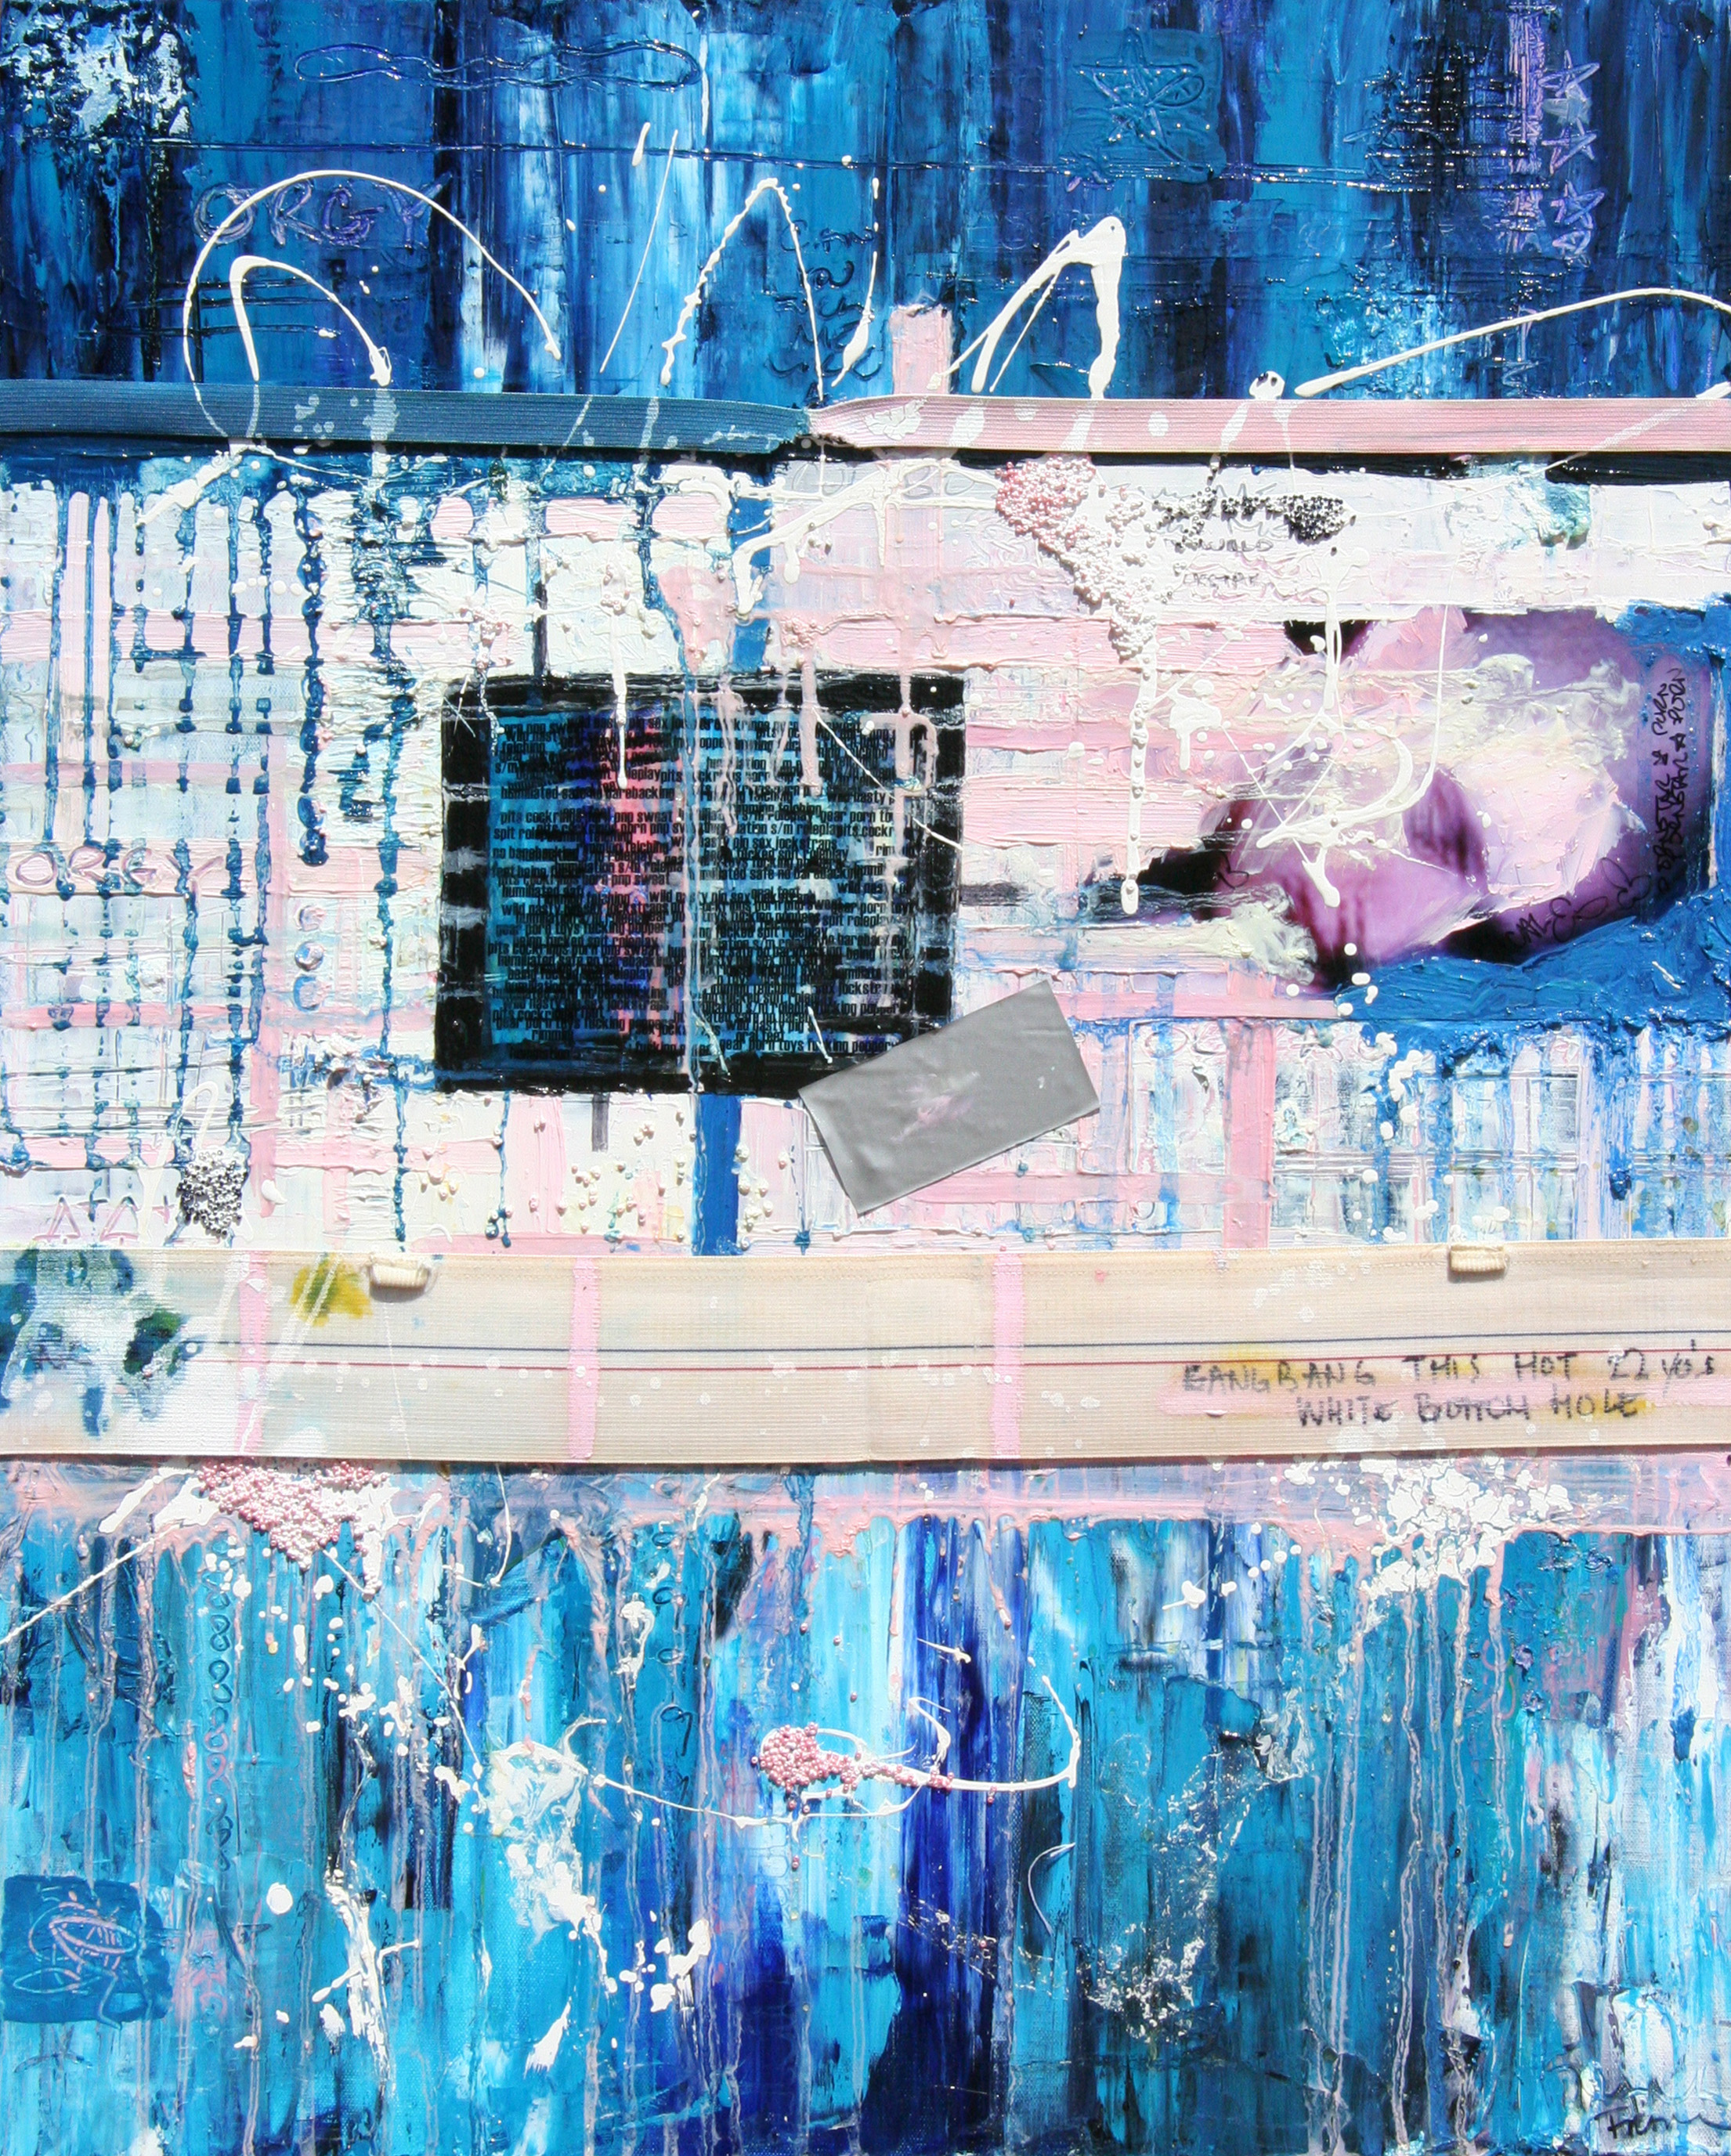 Rapture, 2006, Oil, Jockstrap, and Mixed Media on canvas,  36 x 24 inches